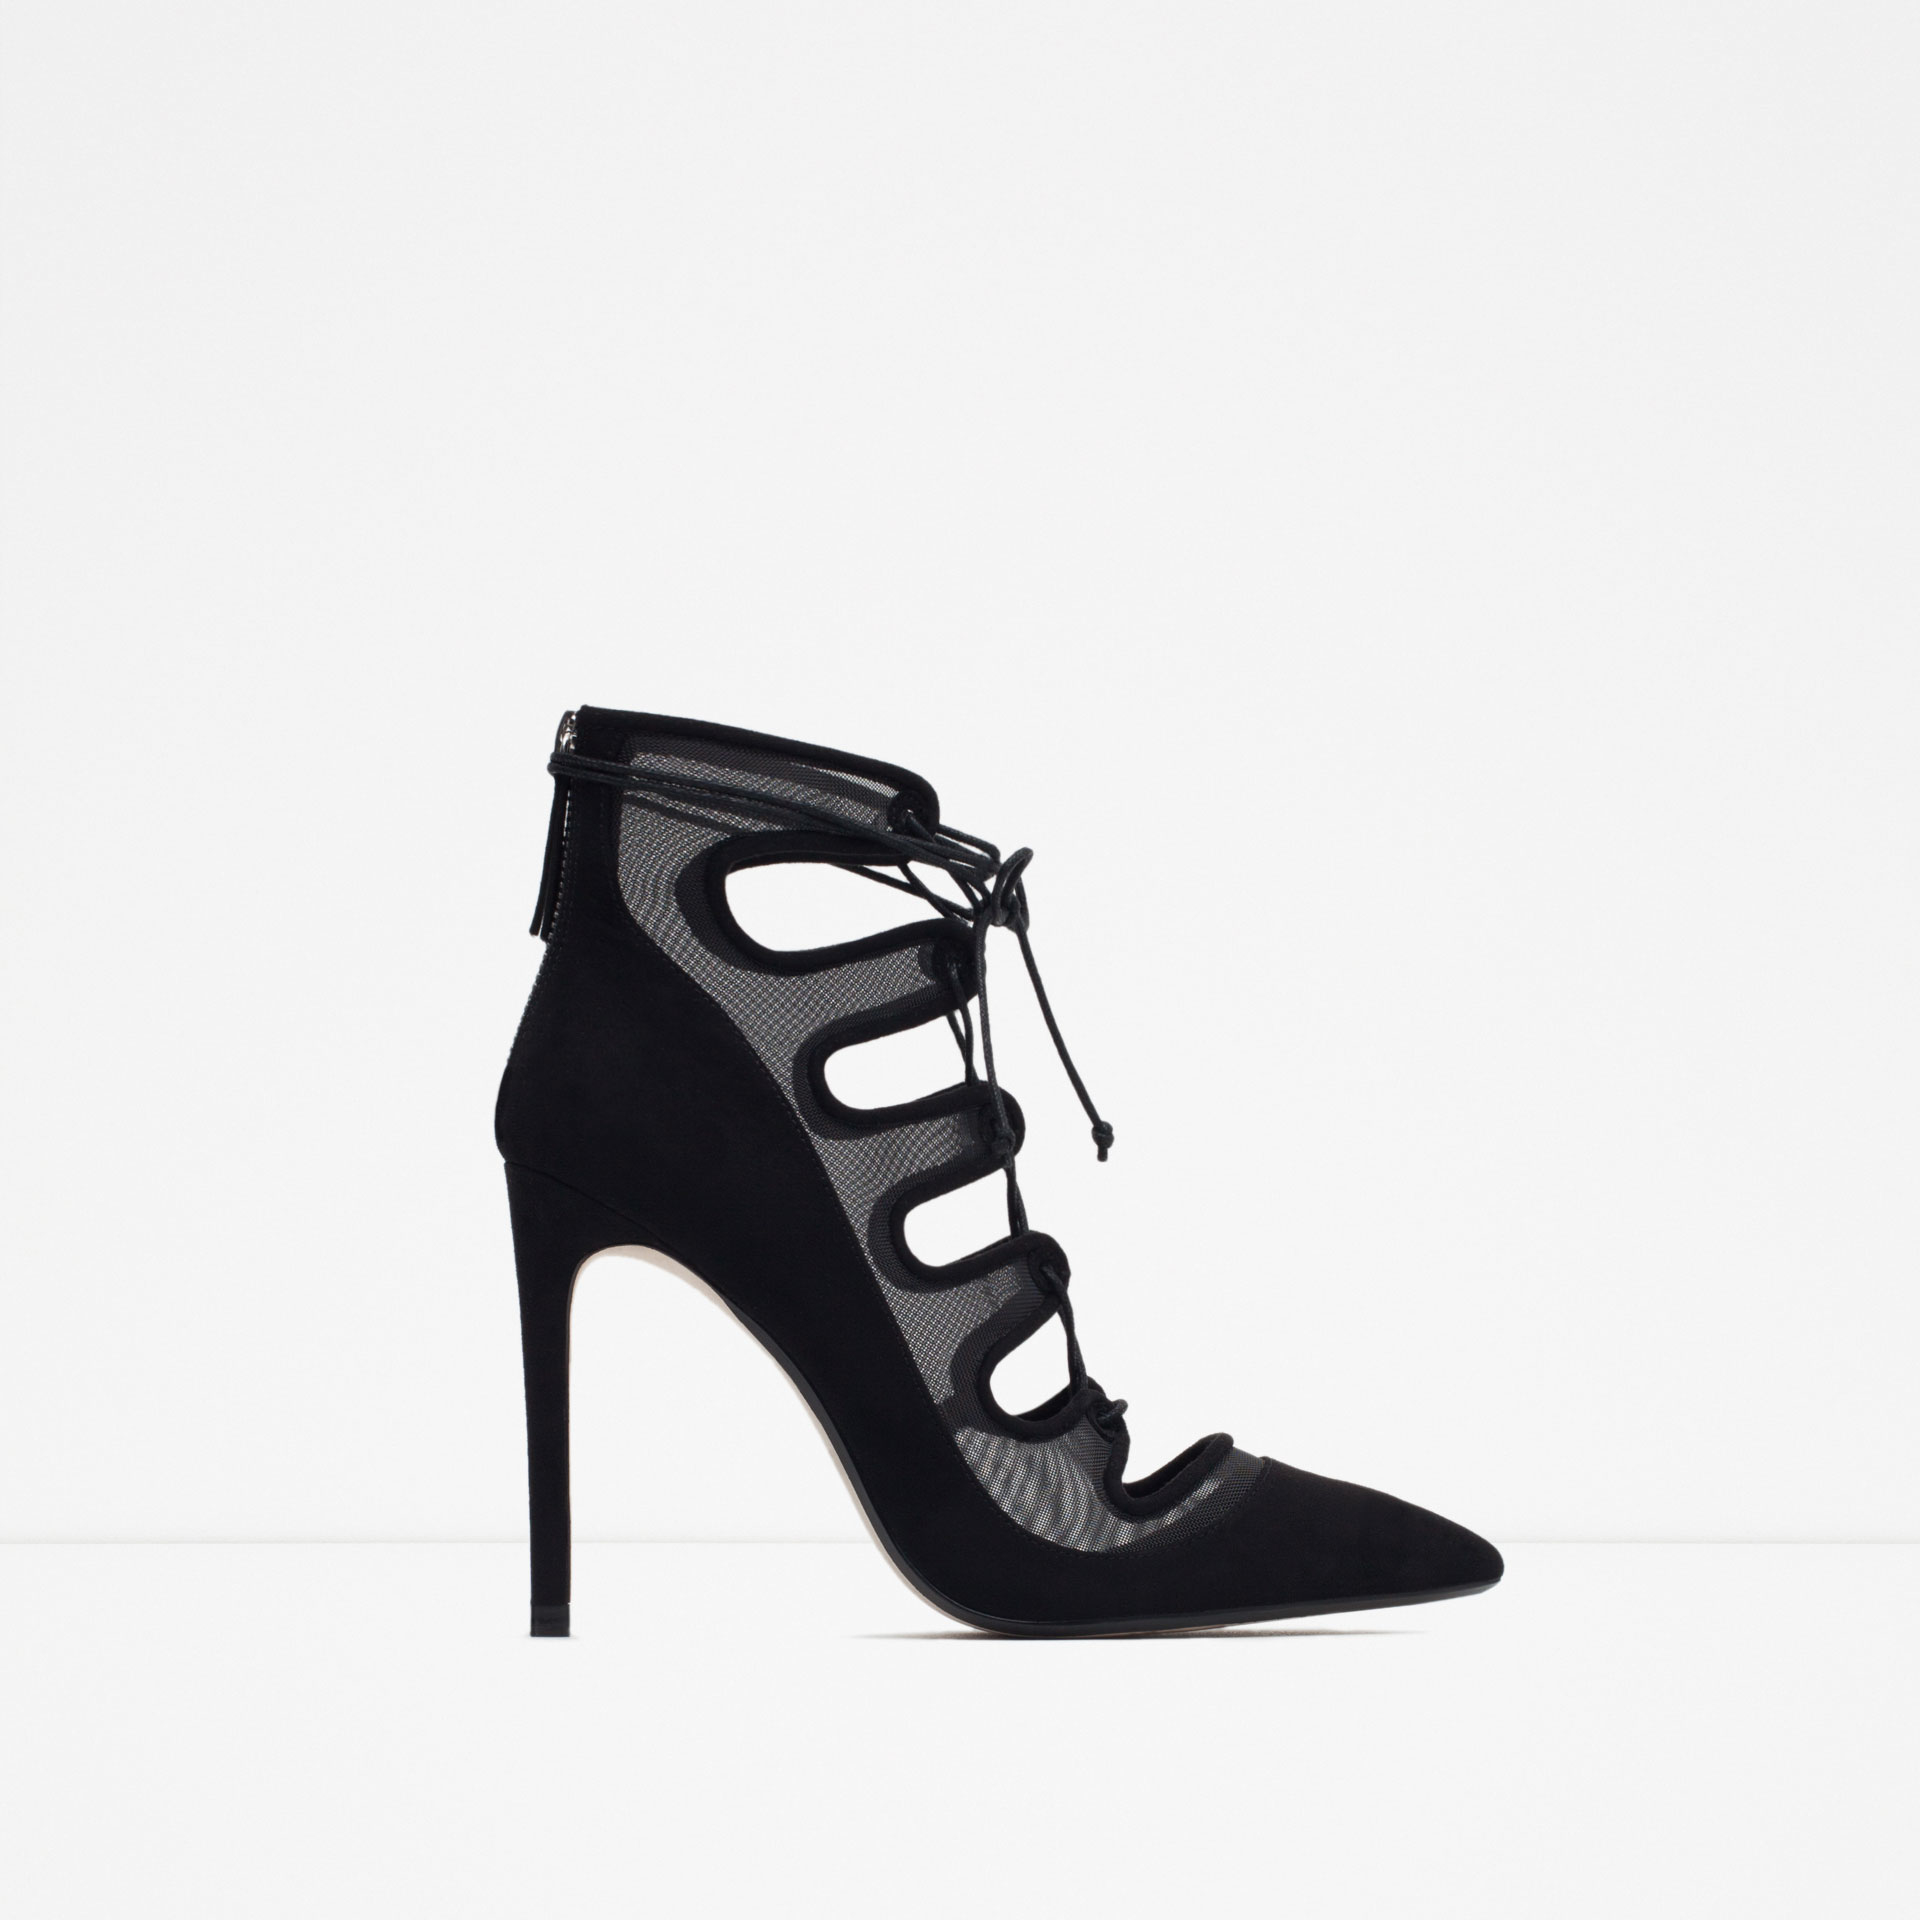 Zara Lace-up Heeled Shoes With Mesh Detail in Black  Lyst